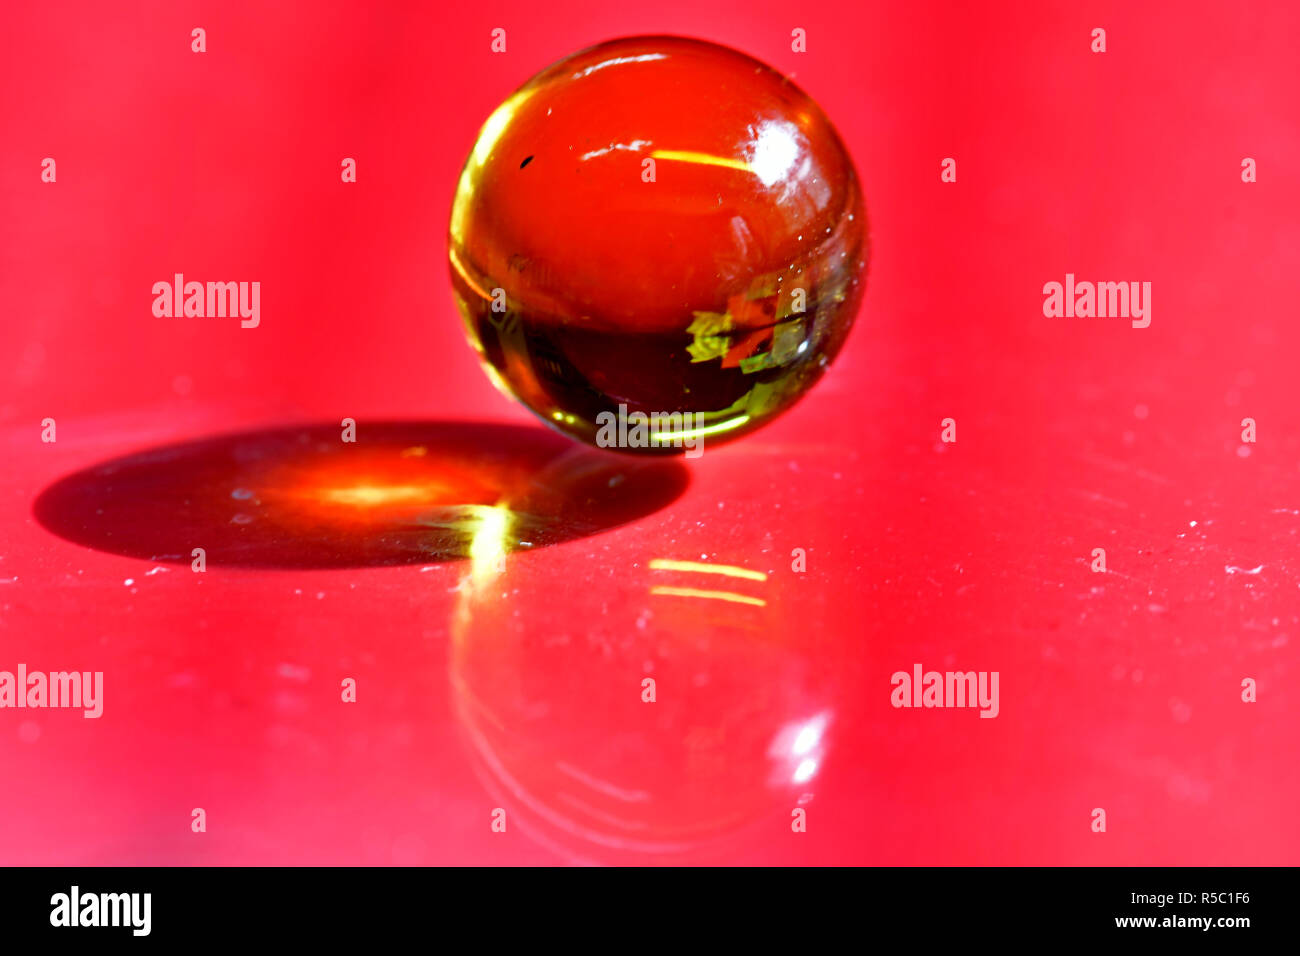 Marbles with light transparency and reflections - Stock Image